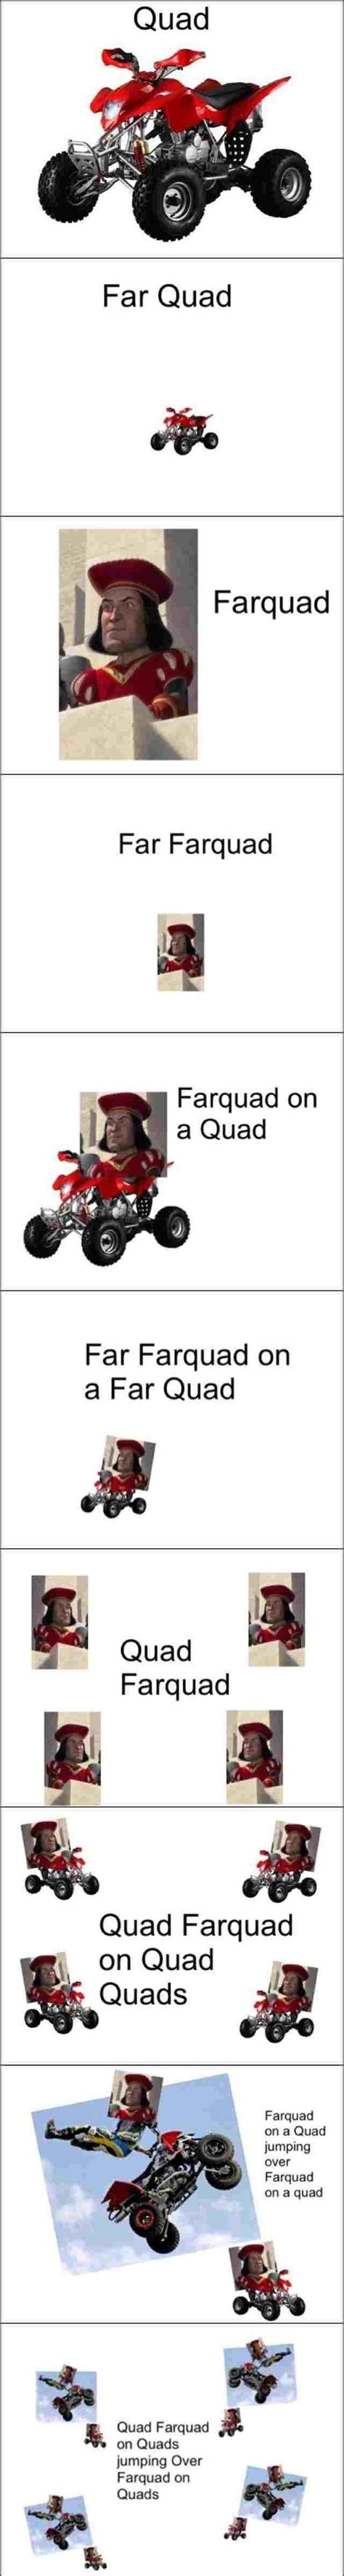 Quad Memes - ok so my friend has the the same haircut as farquad and we